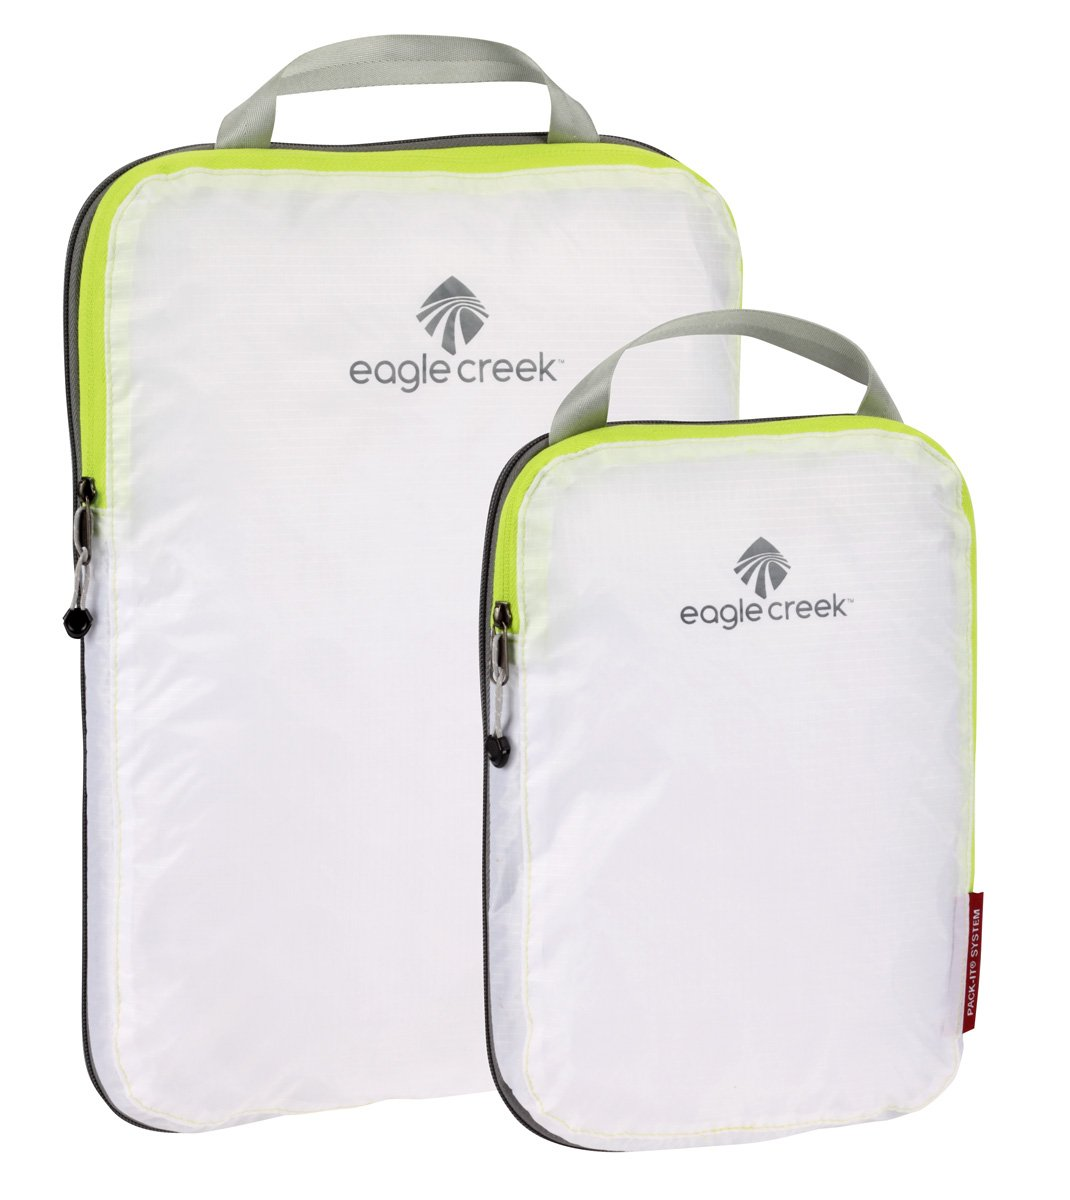 Eagle Creek Pack-It Specter Compression Packing Cubes, White/Strobe, Set of 2